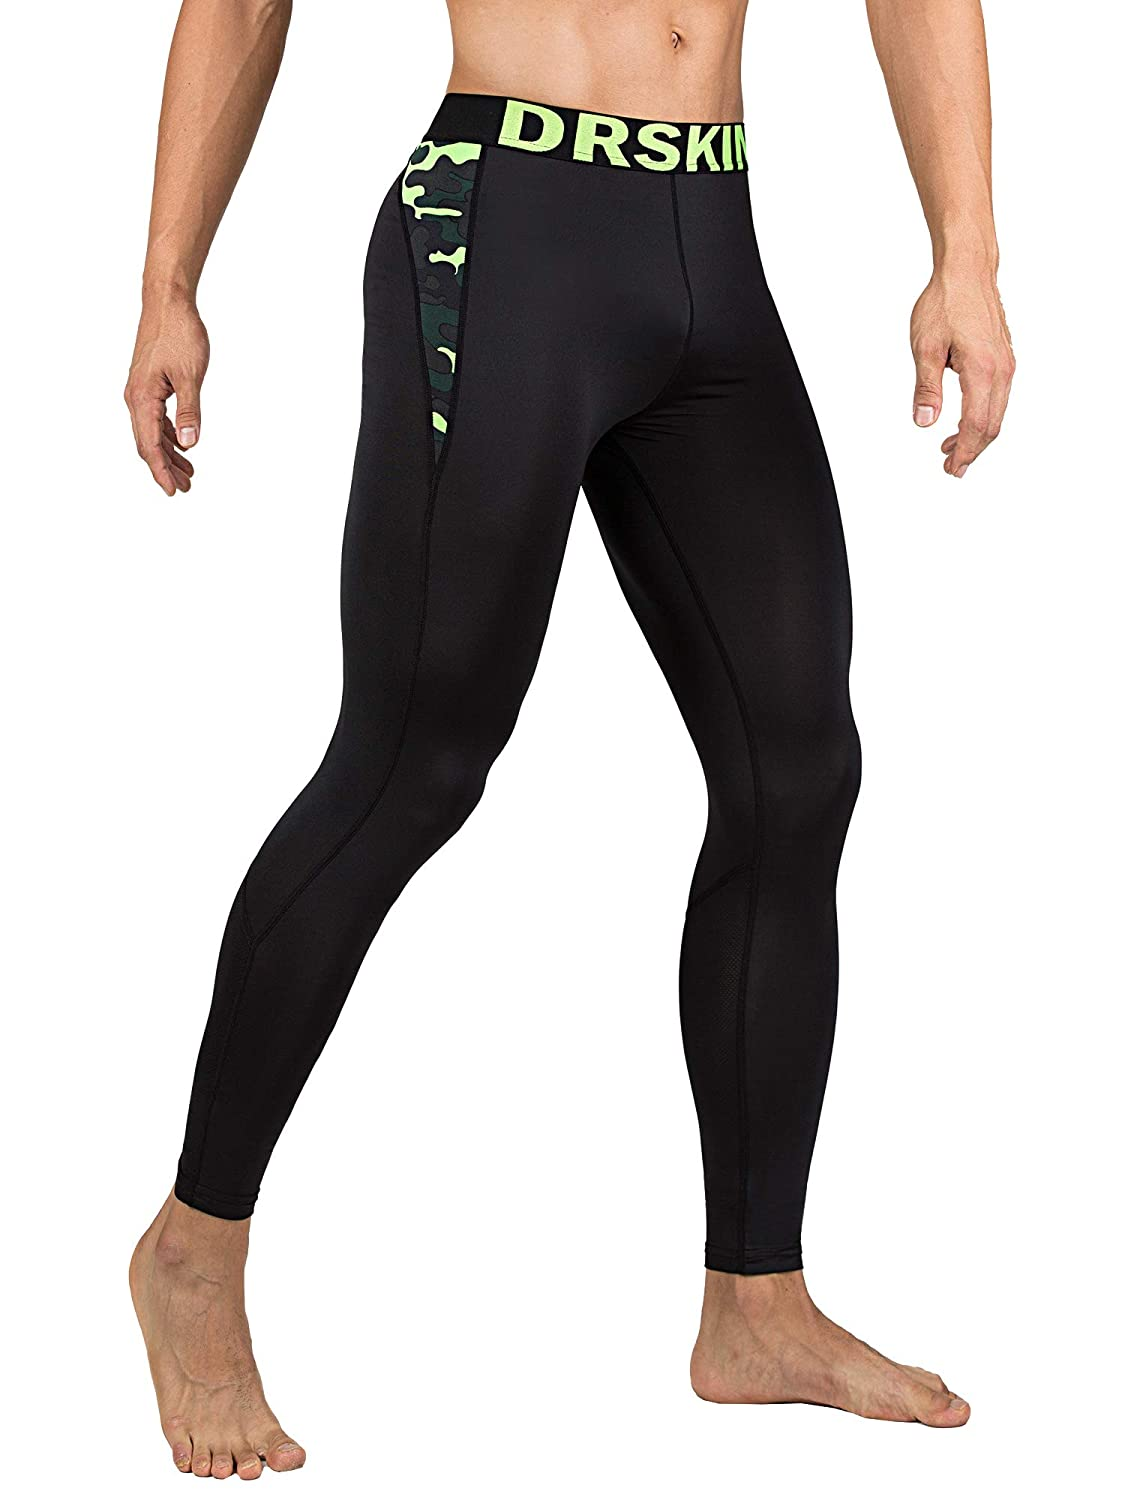 Packs of 1, 2, or 3 Deals DRSKIN 1~3 Pack Men/'s Compression Dry Cool Sports Tights Pants Baselayer Running Leggings Yoga